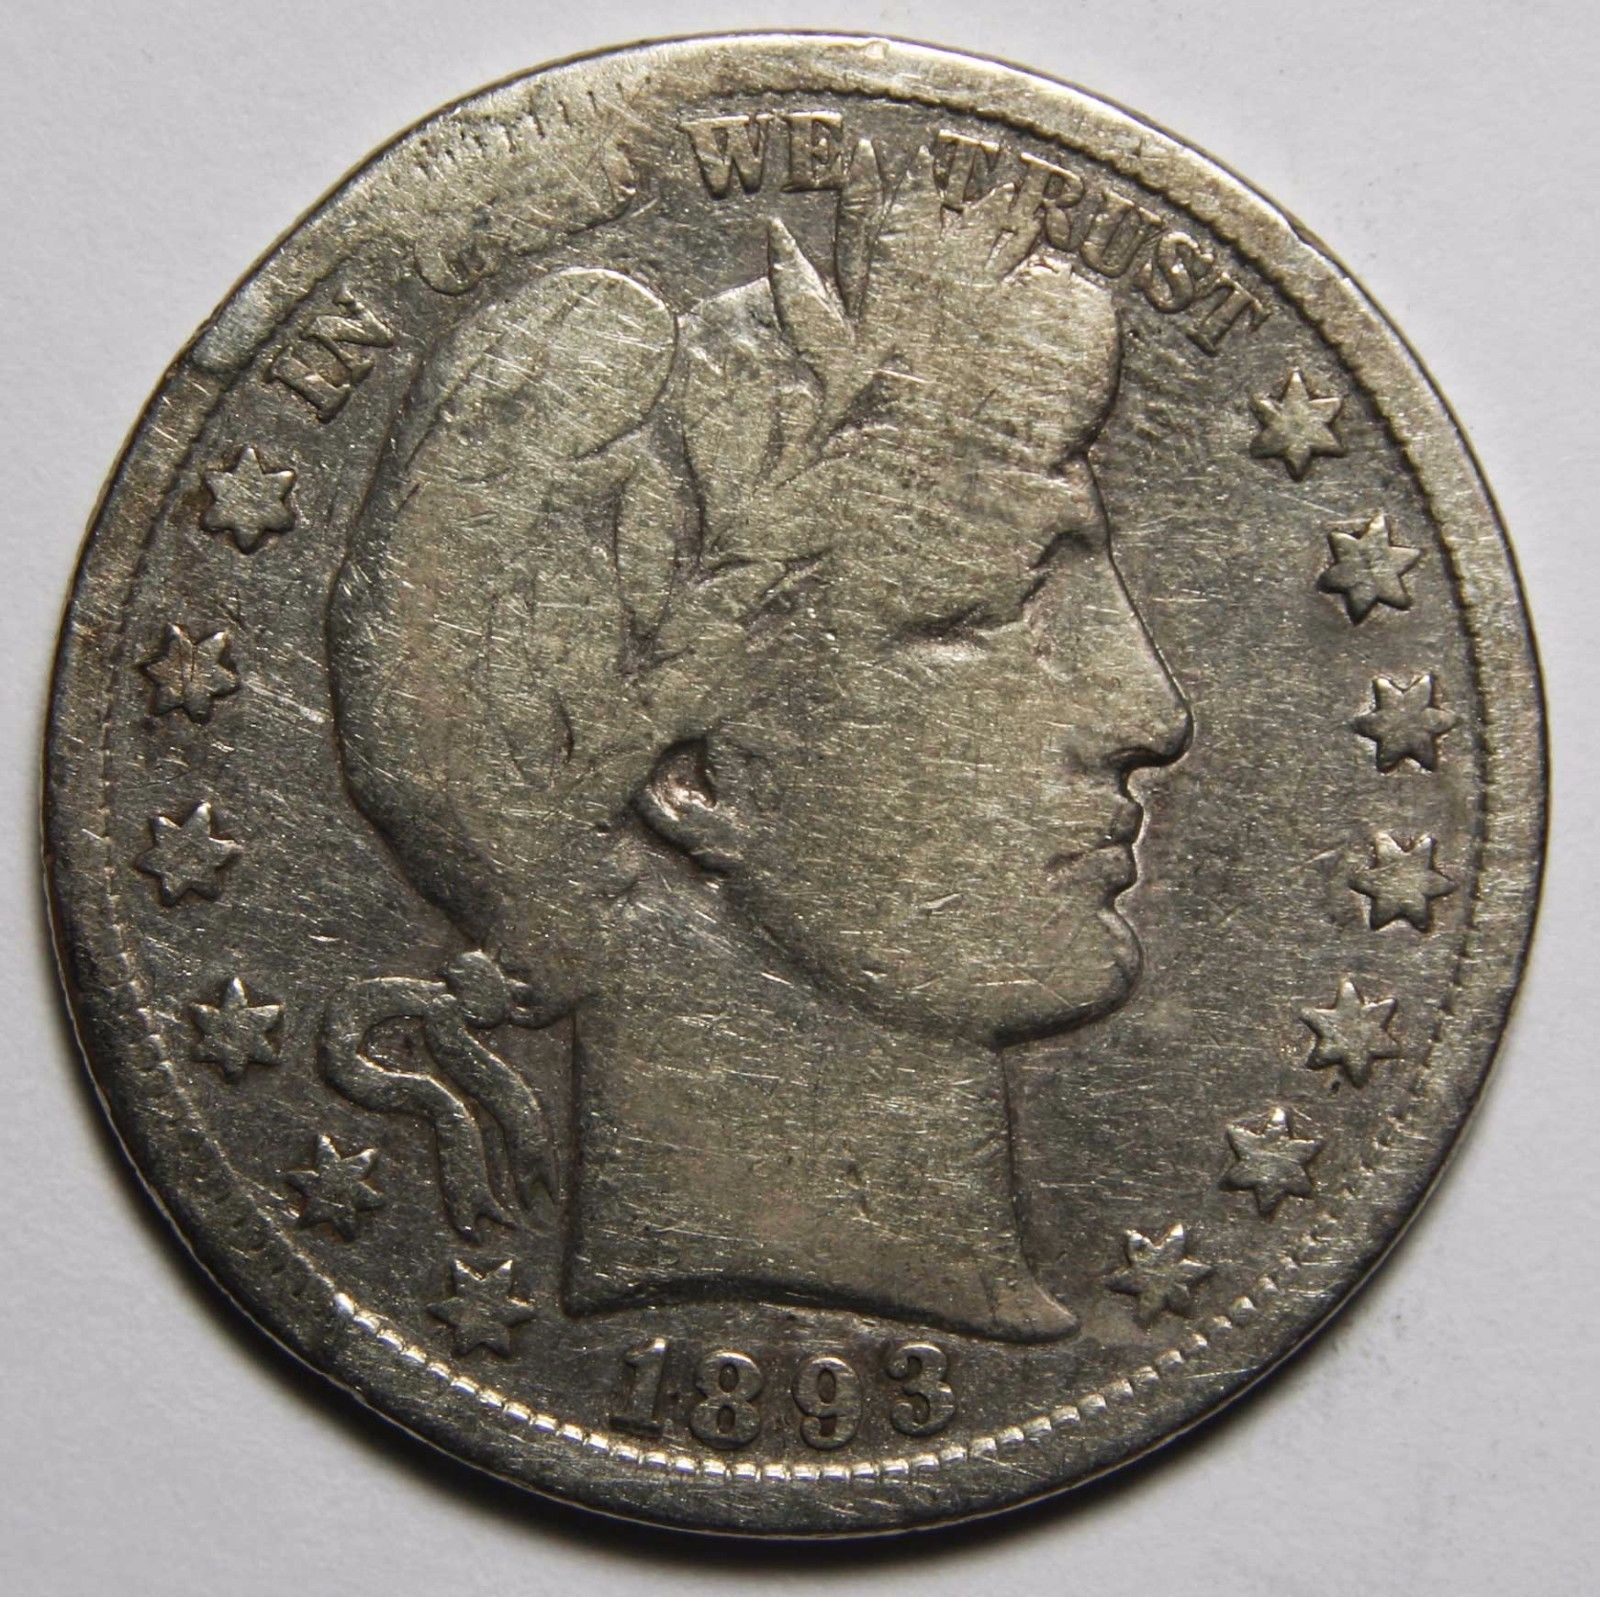 1893S Liberty Barber Head Half Dollar 50¢ Silver Coin Lot A 2262